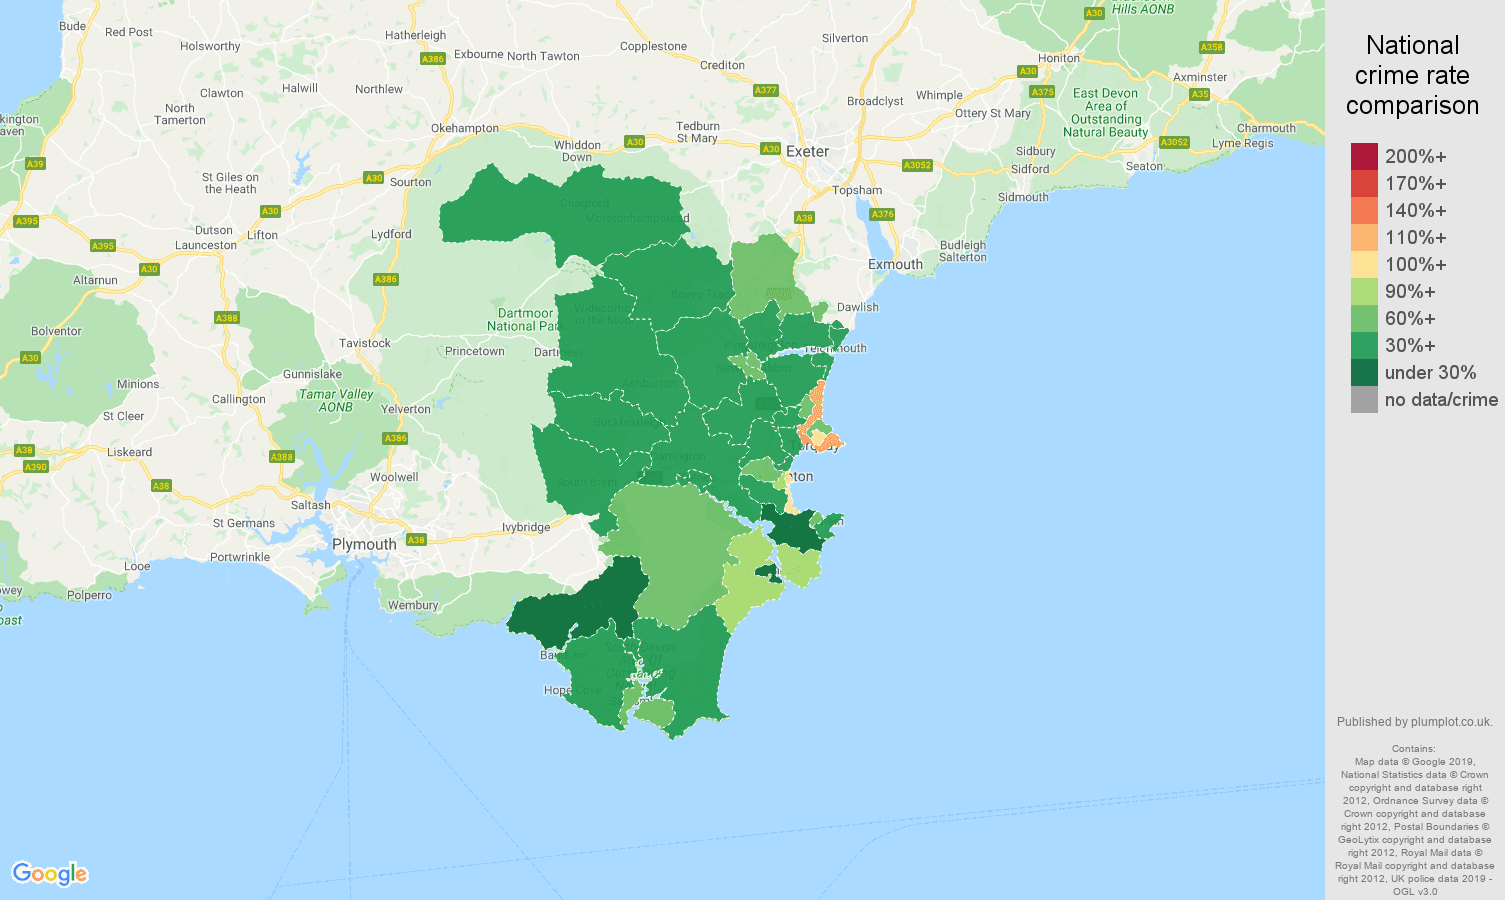 Torquay other theft crime rate comparison map